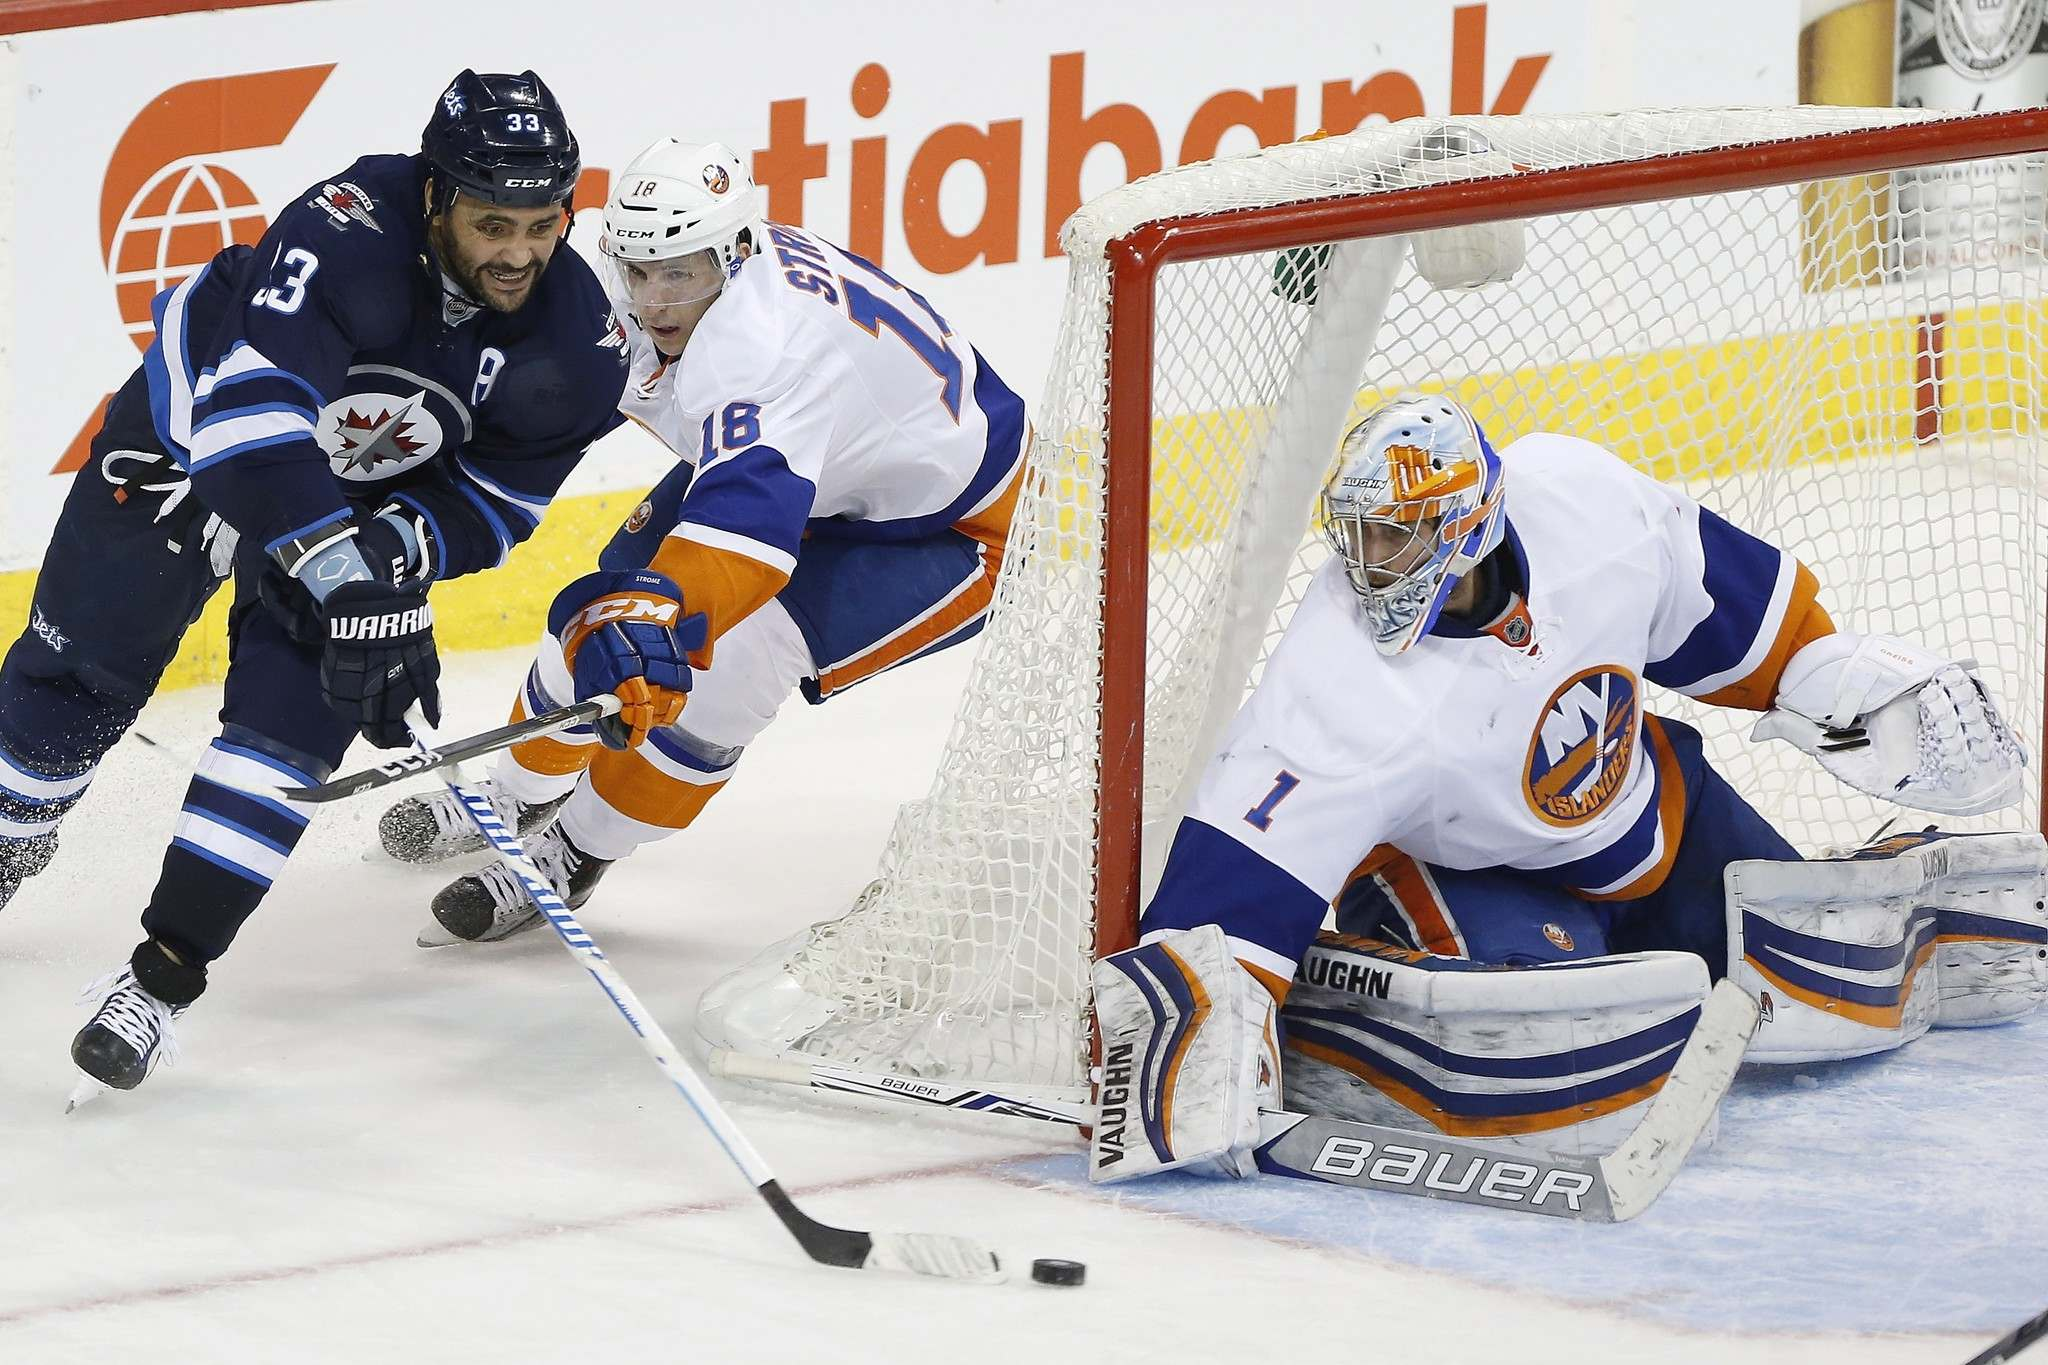 JOHN WOODS / THE CANADIAN PRESS</p><p>New York Islanders' Ryan Strome (18) chases Winnipeg Jets' Dustin Byfuglien (33) as he attempts the wraparound on New York Islanders goaltender Thomas Greiss (1) during the third period.</p>